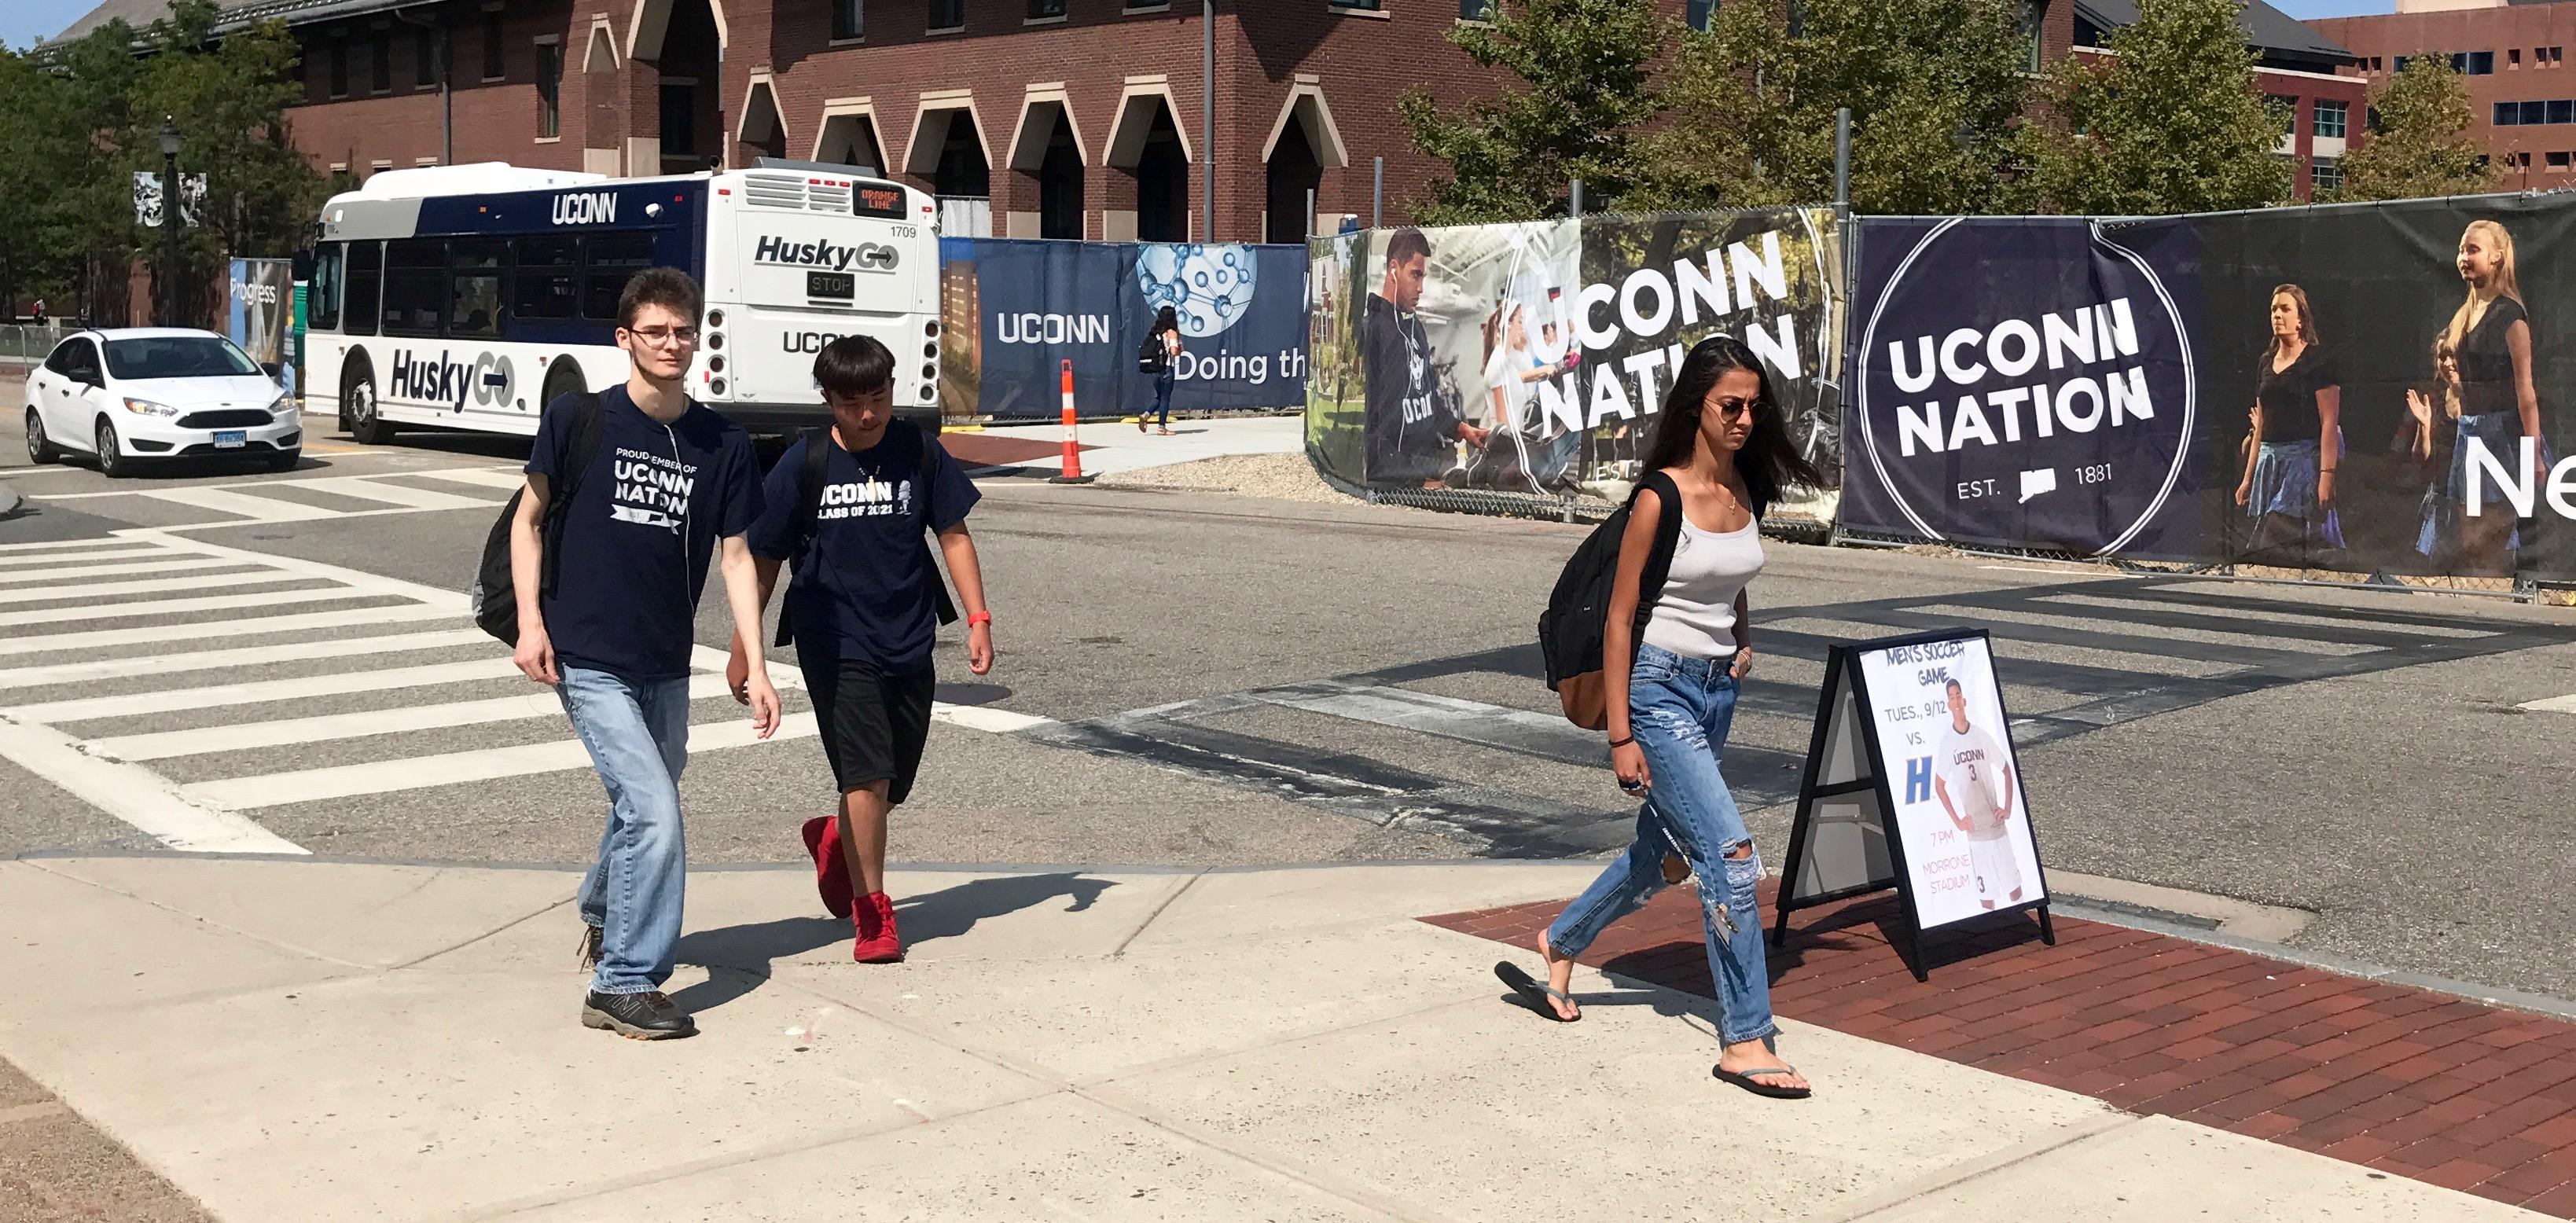 Students move between classes and construction sites at University of Connecticut. (Photo by Rick Holmes)